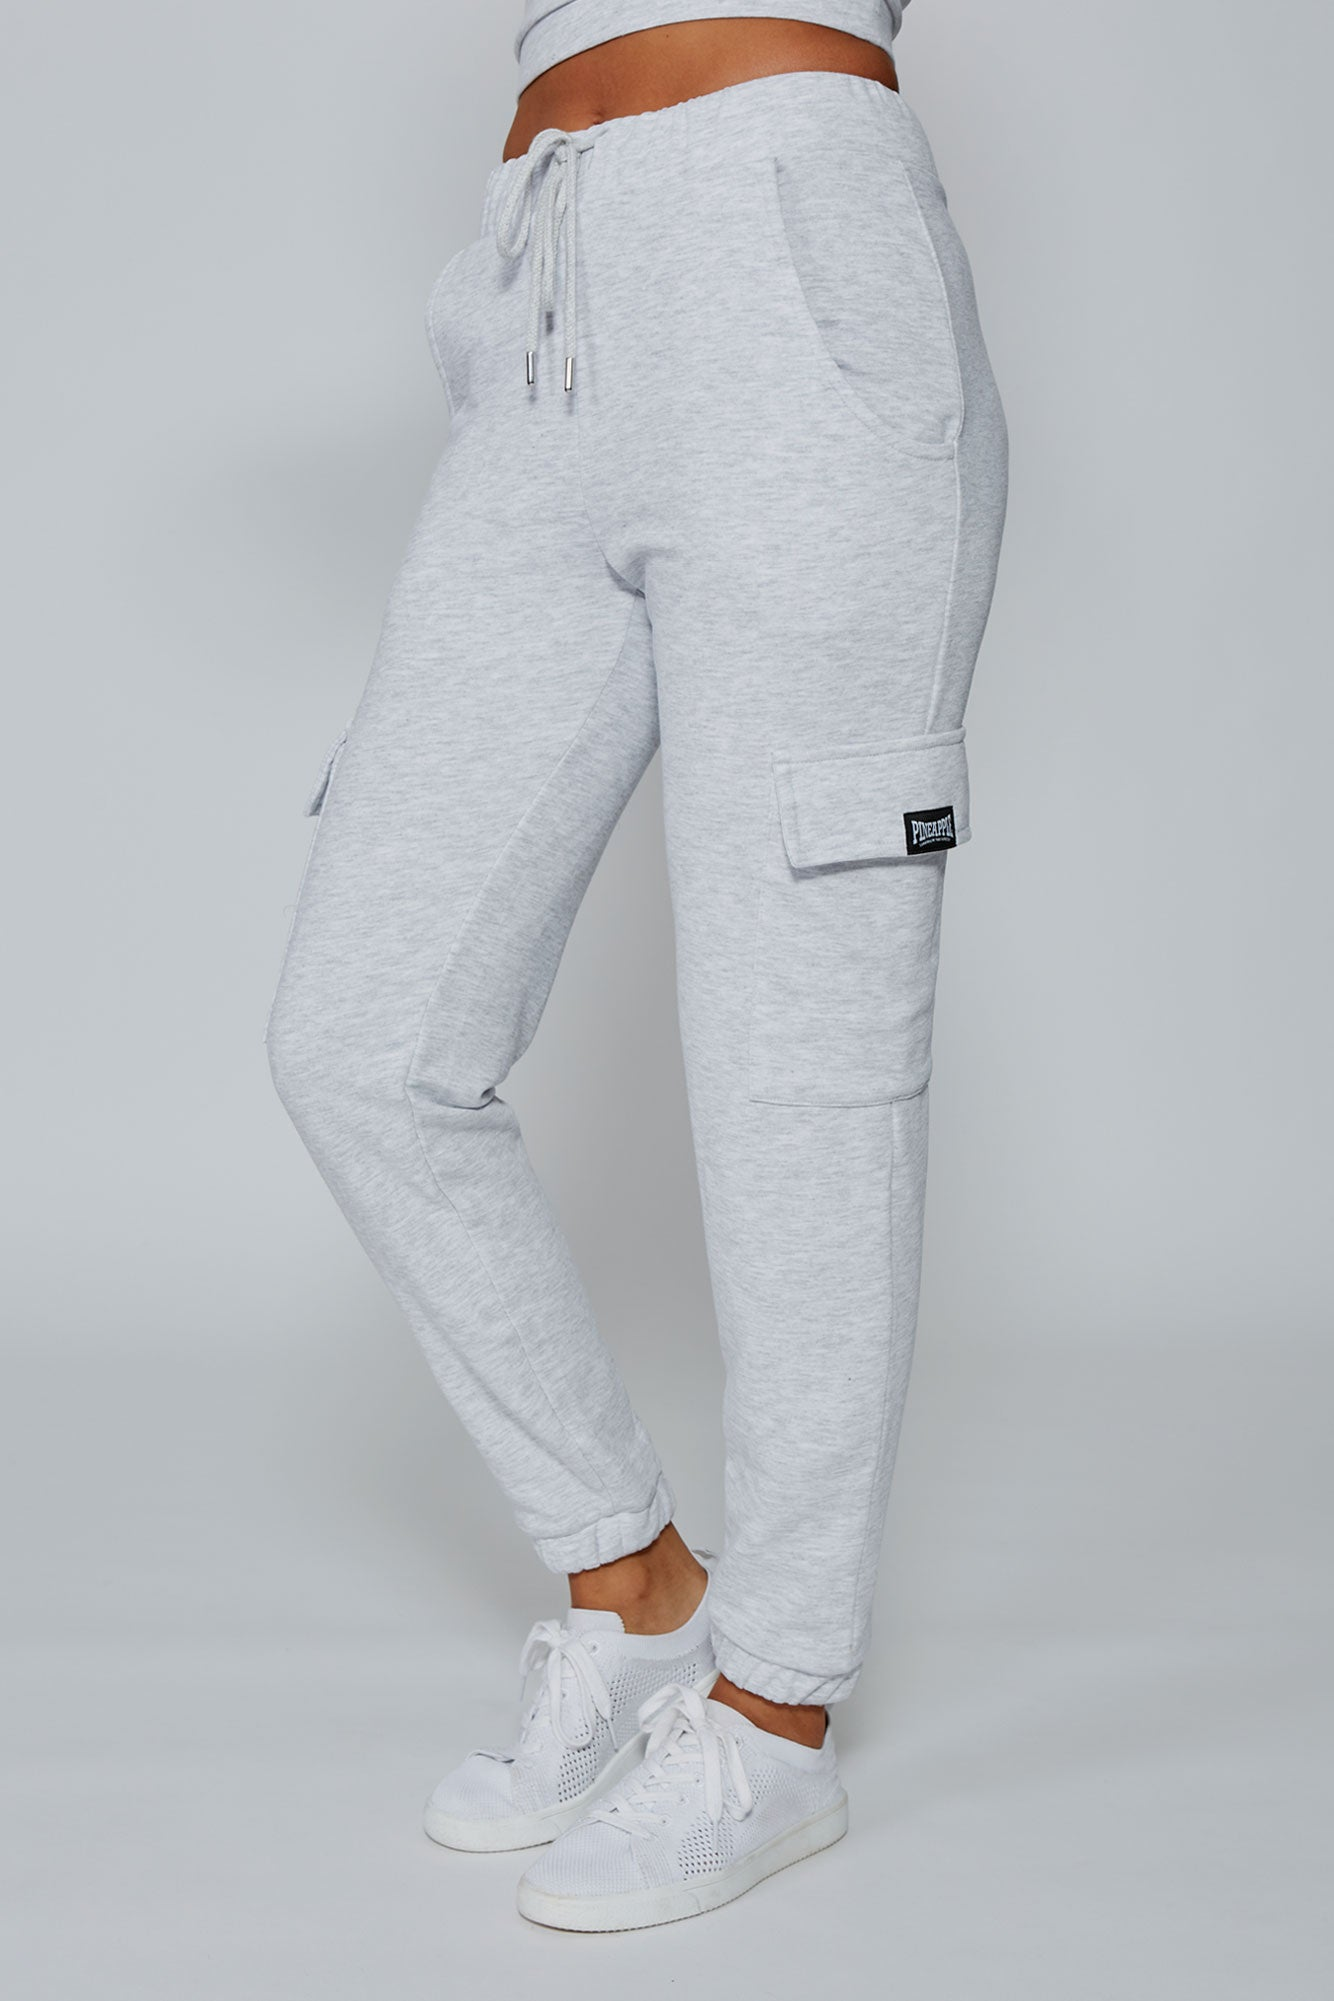 Pineapple Dance Women's Grey Marl Cargo Jogger  PT17130A3